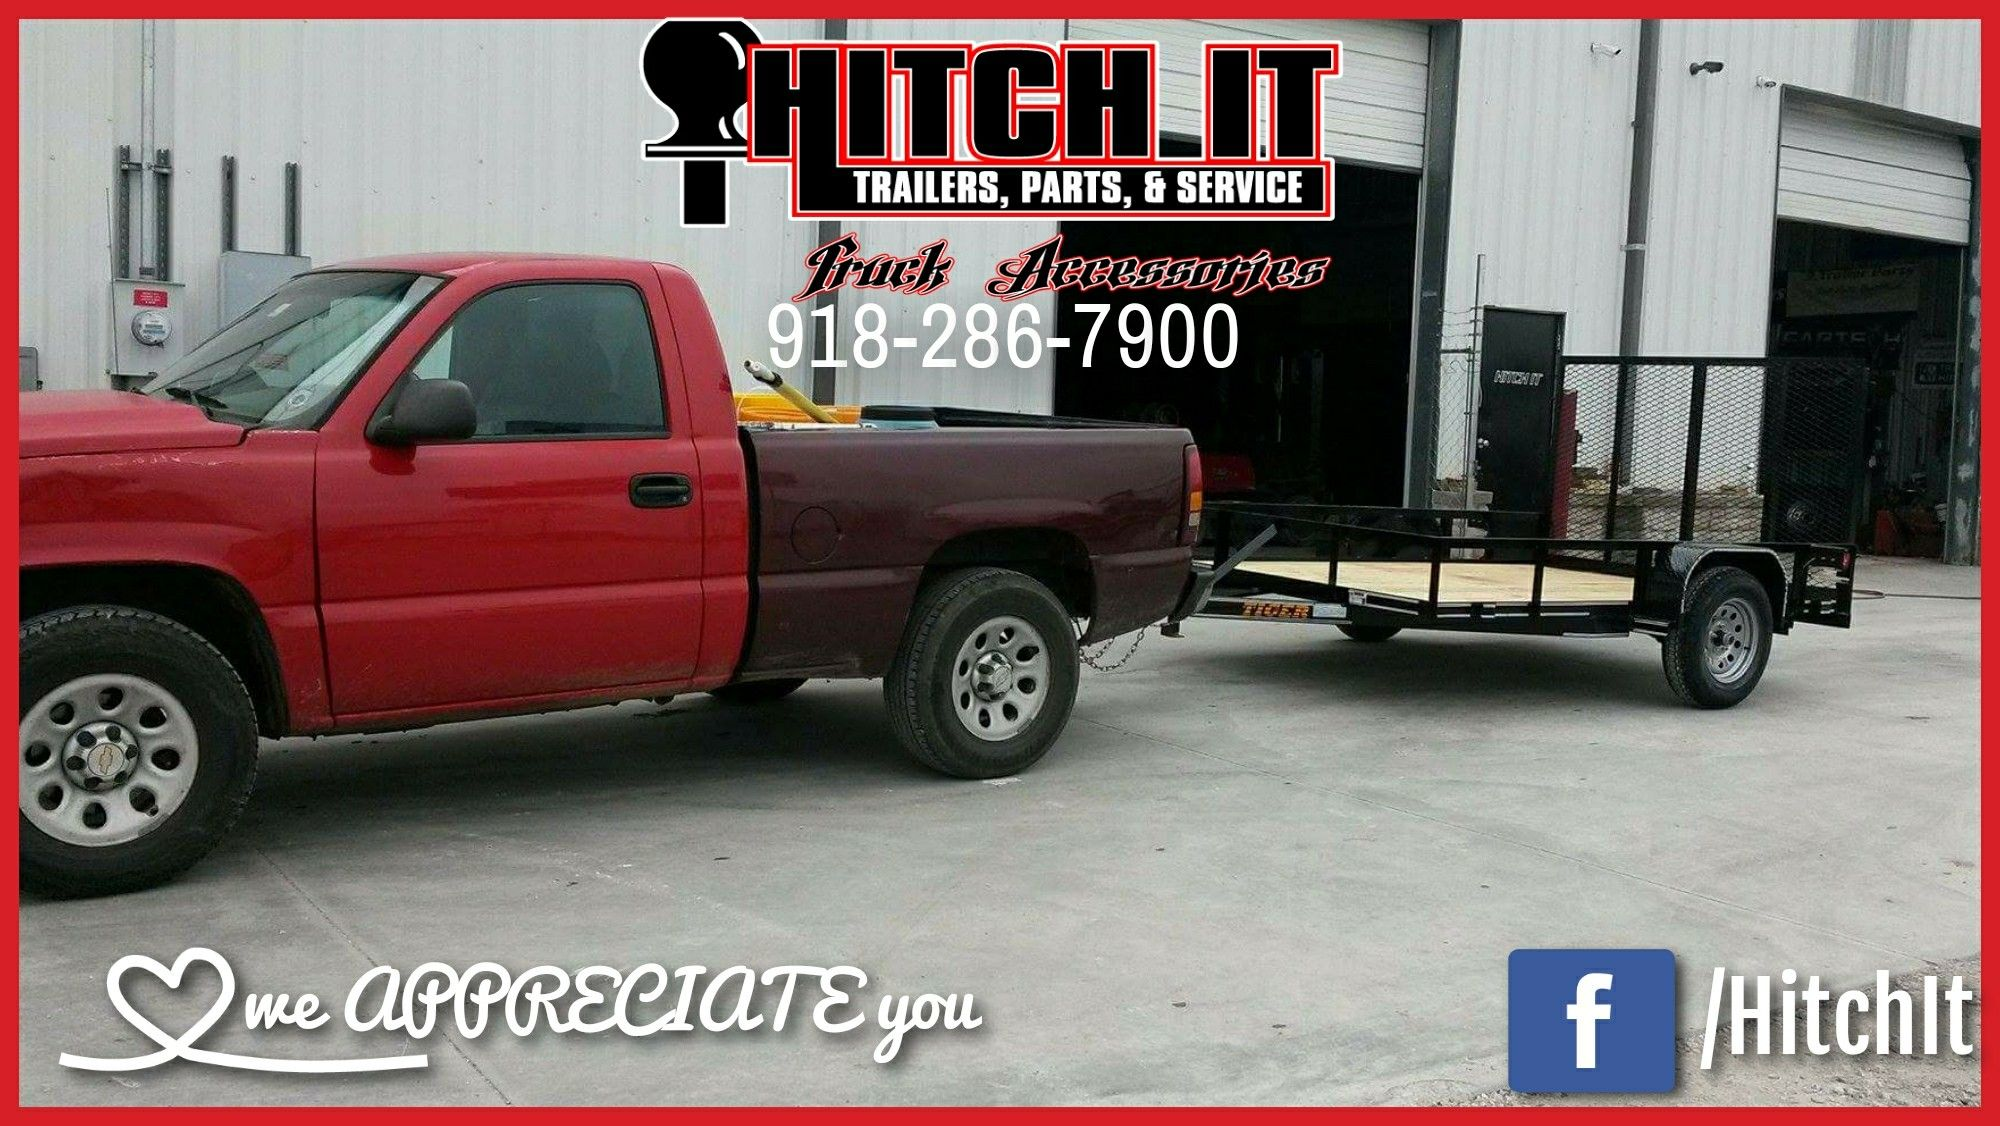 Thank You For Your Lark 8 5 X 16 Trailer Purchase 918 286 7900 Hitch It Trailers Parts Service Landscape Trailers Enclosed Cargo Trailers